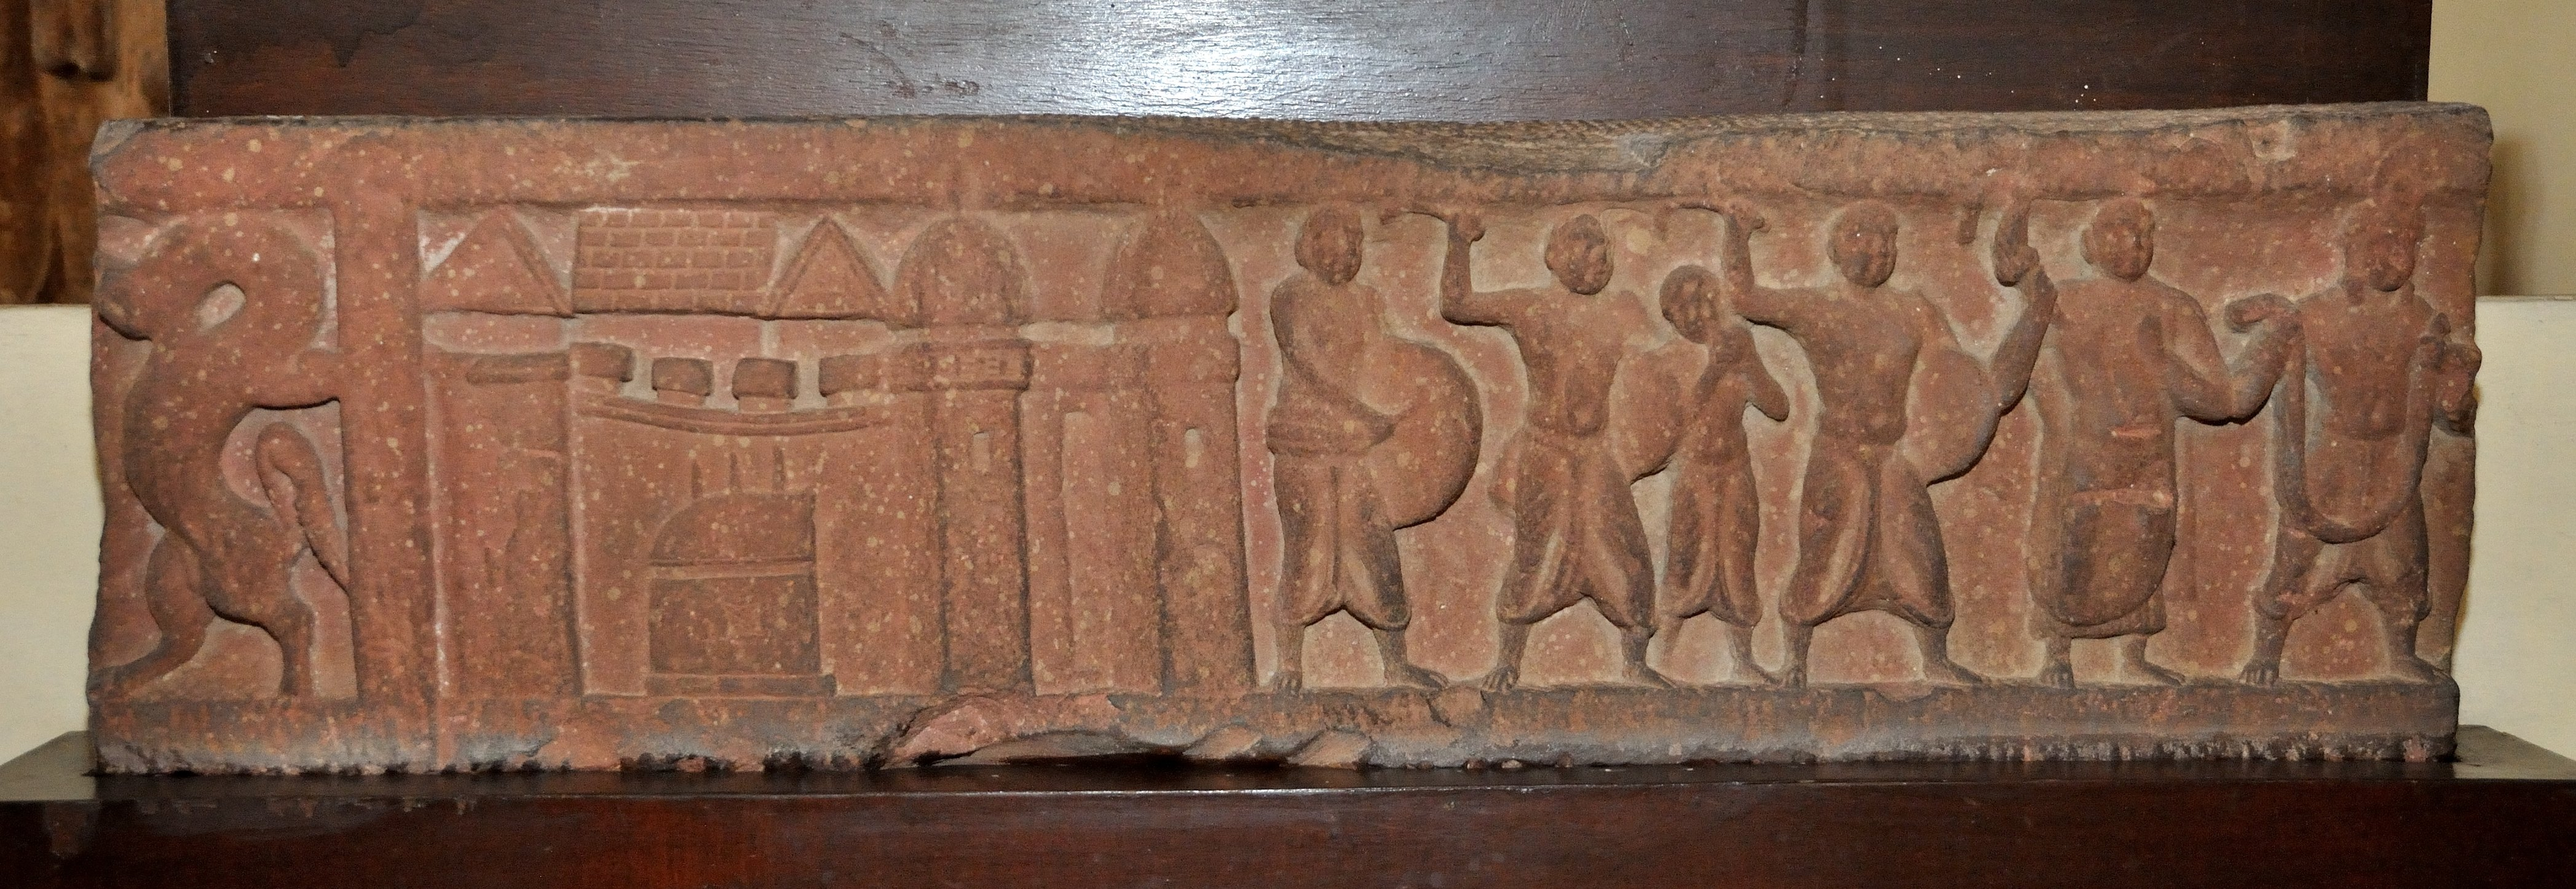 Frieze_Showing_City_Gate_and_Procession_Going_for_Worship_-_Circa_1st_Century_CE_-_Gali_Qanung...JPG